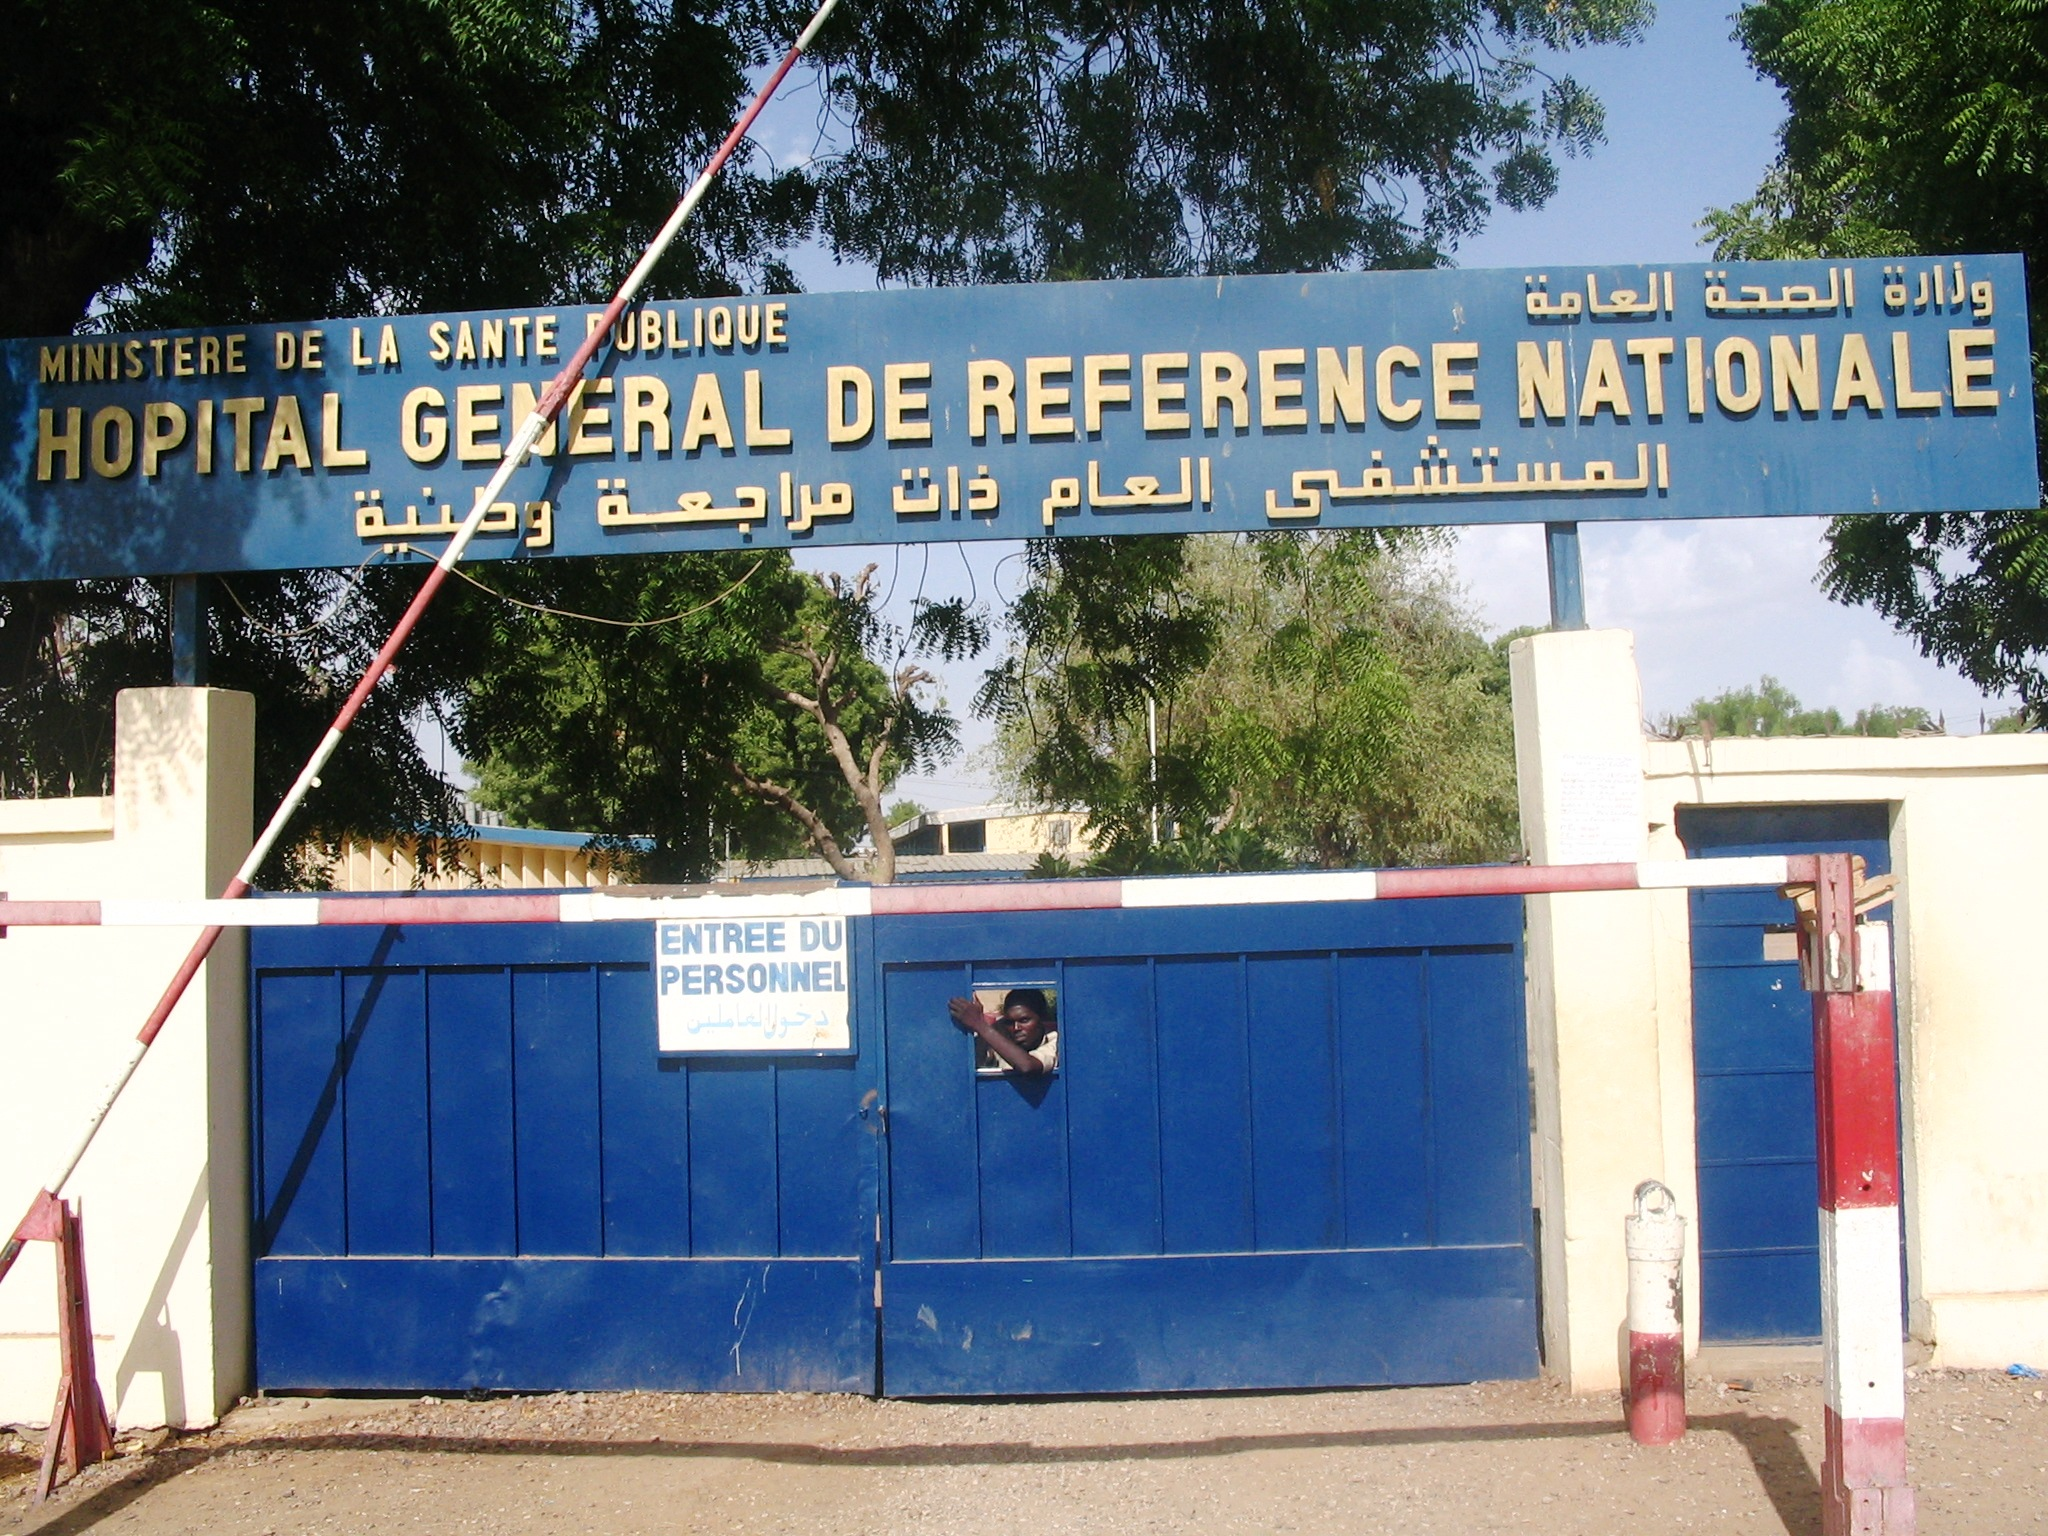 Central hospital in Ndjemena closed completely on 30 May after general strike started on 2 May.